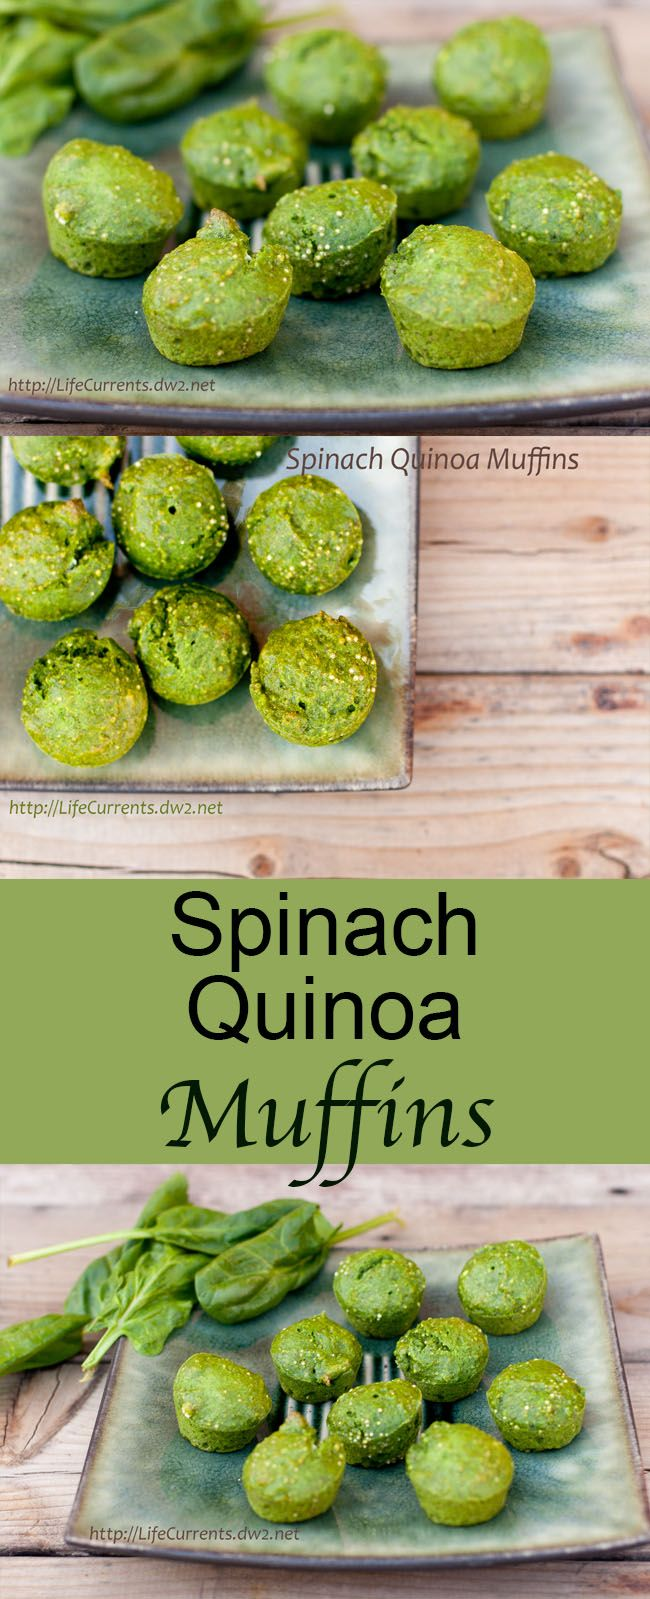 "Spinach Quinoa Muffins - Life Currents I'd like to call these ""Oscar The Grouch Muffins"". Green and kind of gruff looking, but ultimately lovable and yummy!"